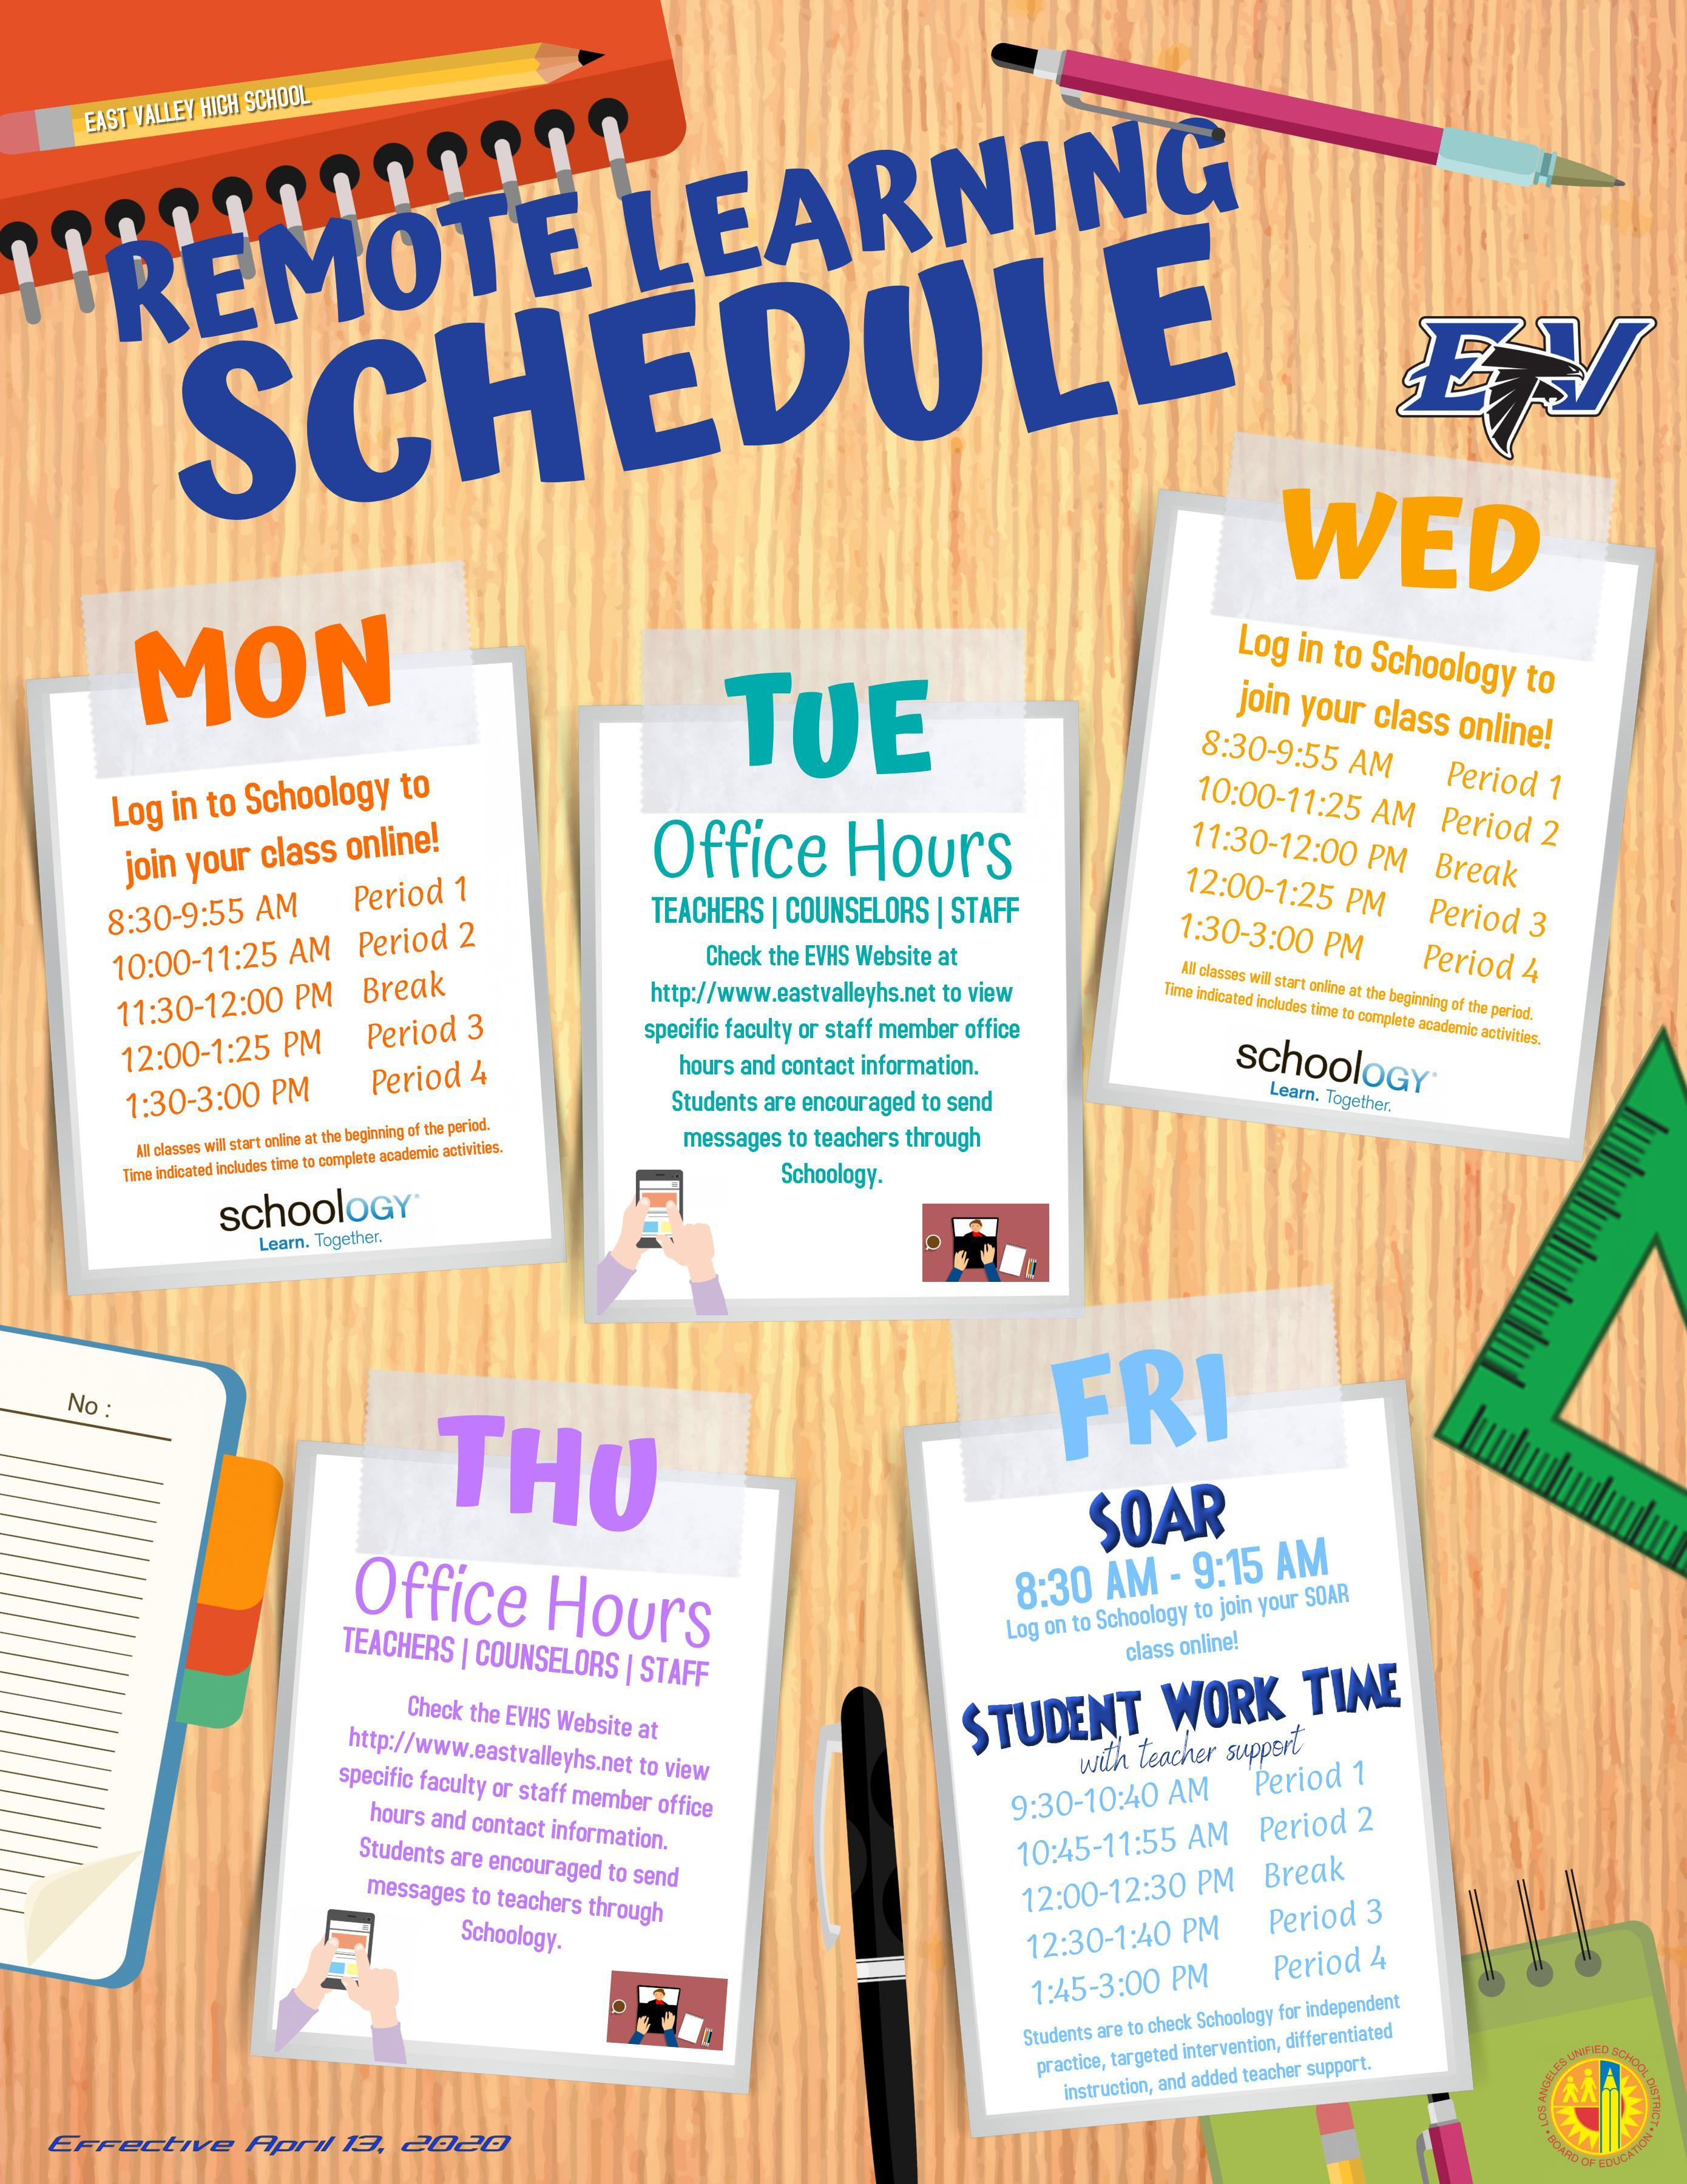 Students Remote Learning Schedule